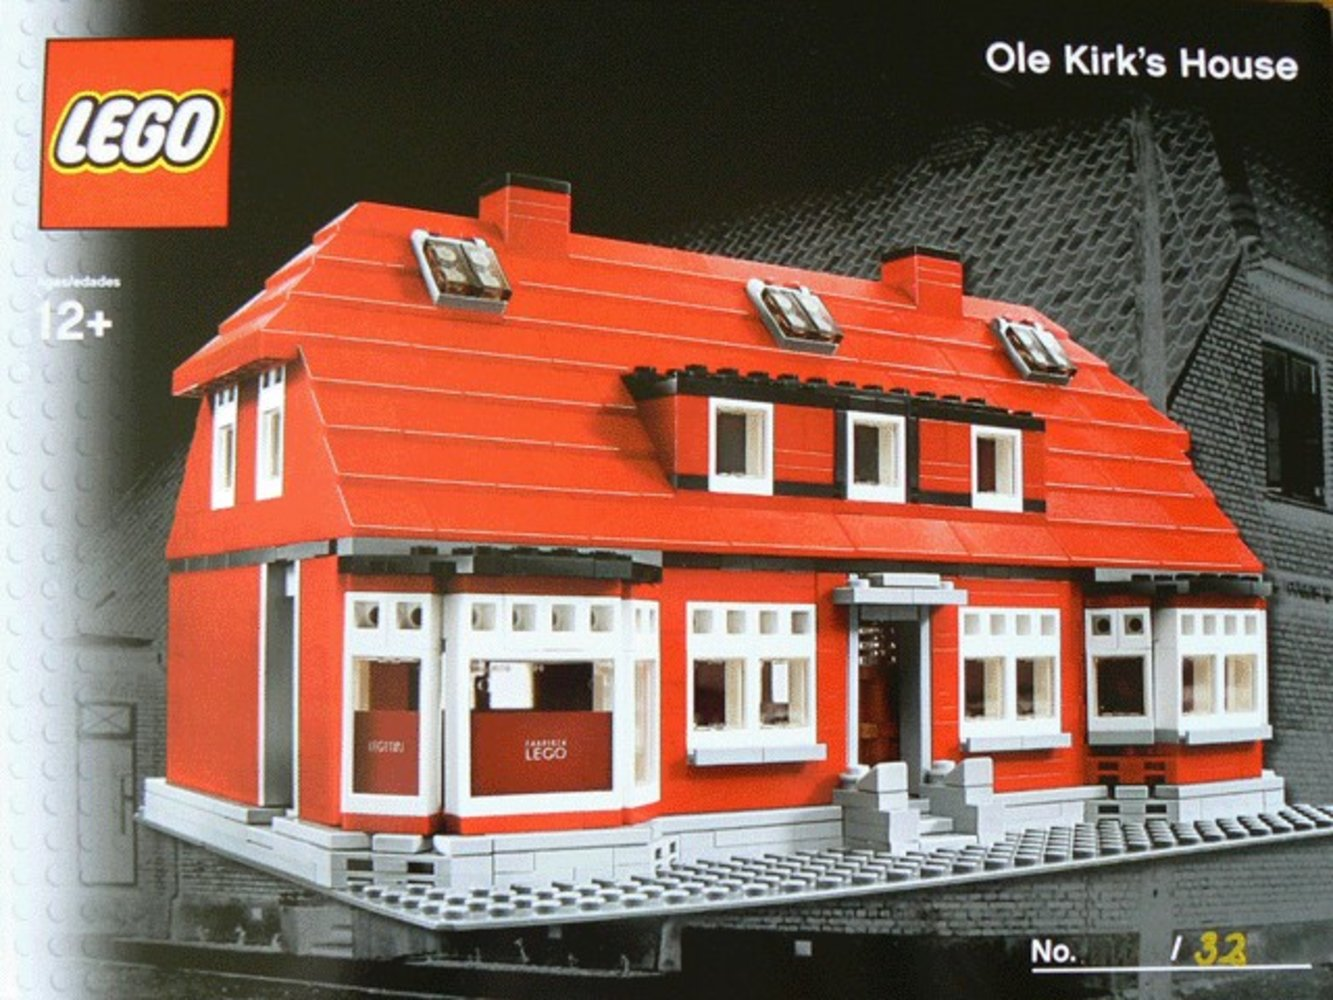 Ole Kirk's House (LEGO Inside Tour Version)